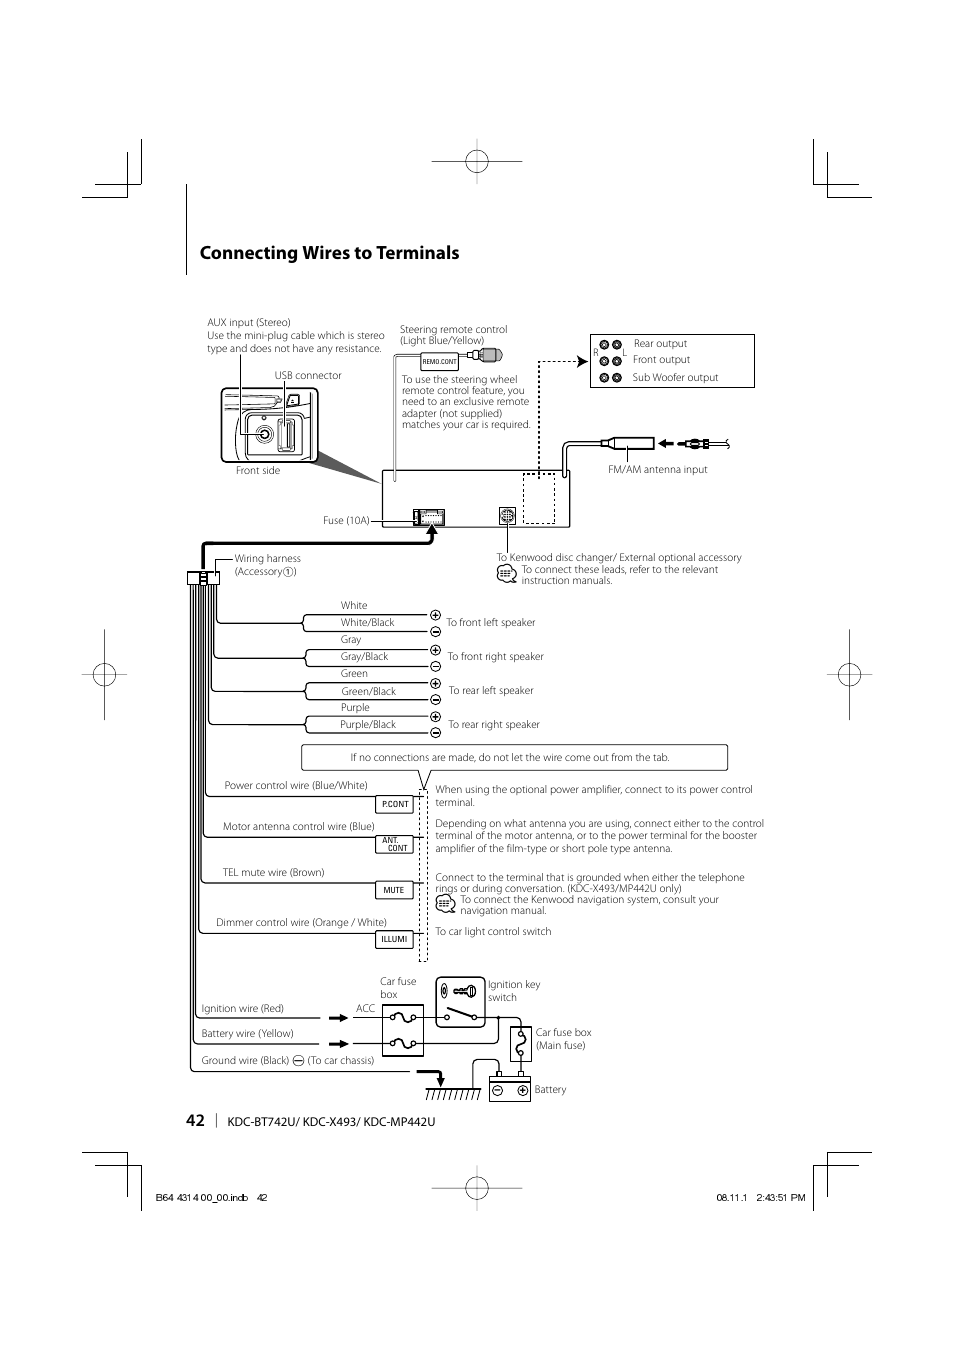 Kenwood Model Kdc X493 Wiring Diagram Portal Harness Colors Connecting Wires To Terminals Bt742u User Manual Rh Manualsdir Com